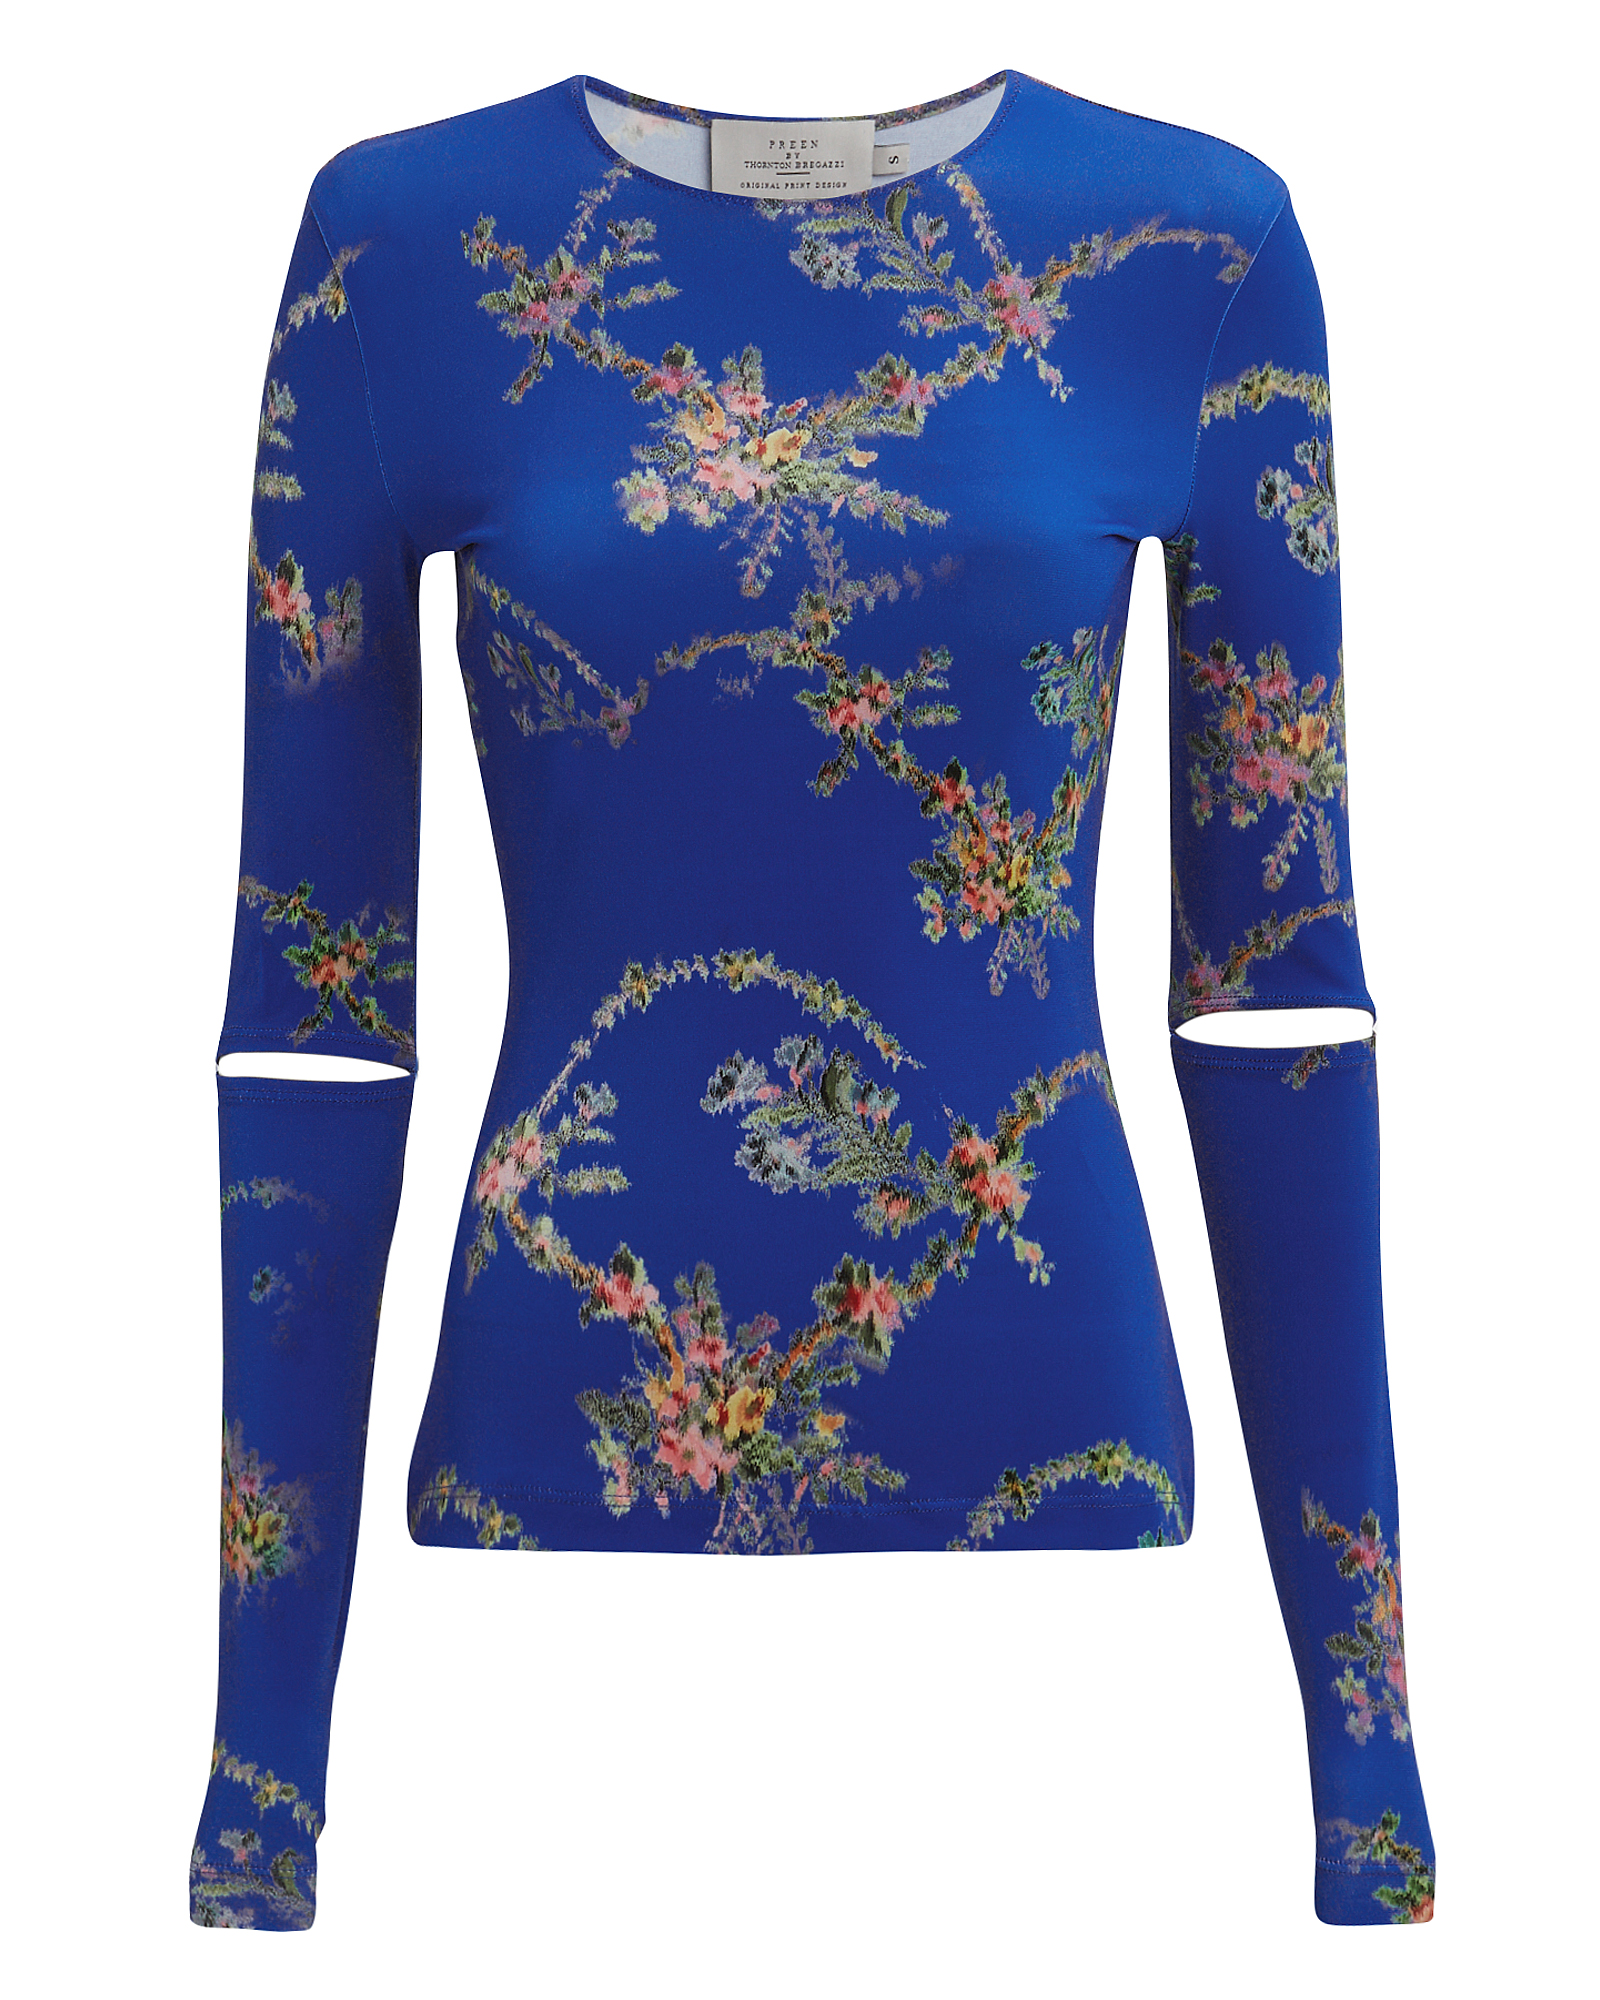 PREEN Reen By Thornton Bregazzi Dee Floral To Blue/Floral